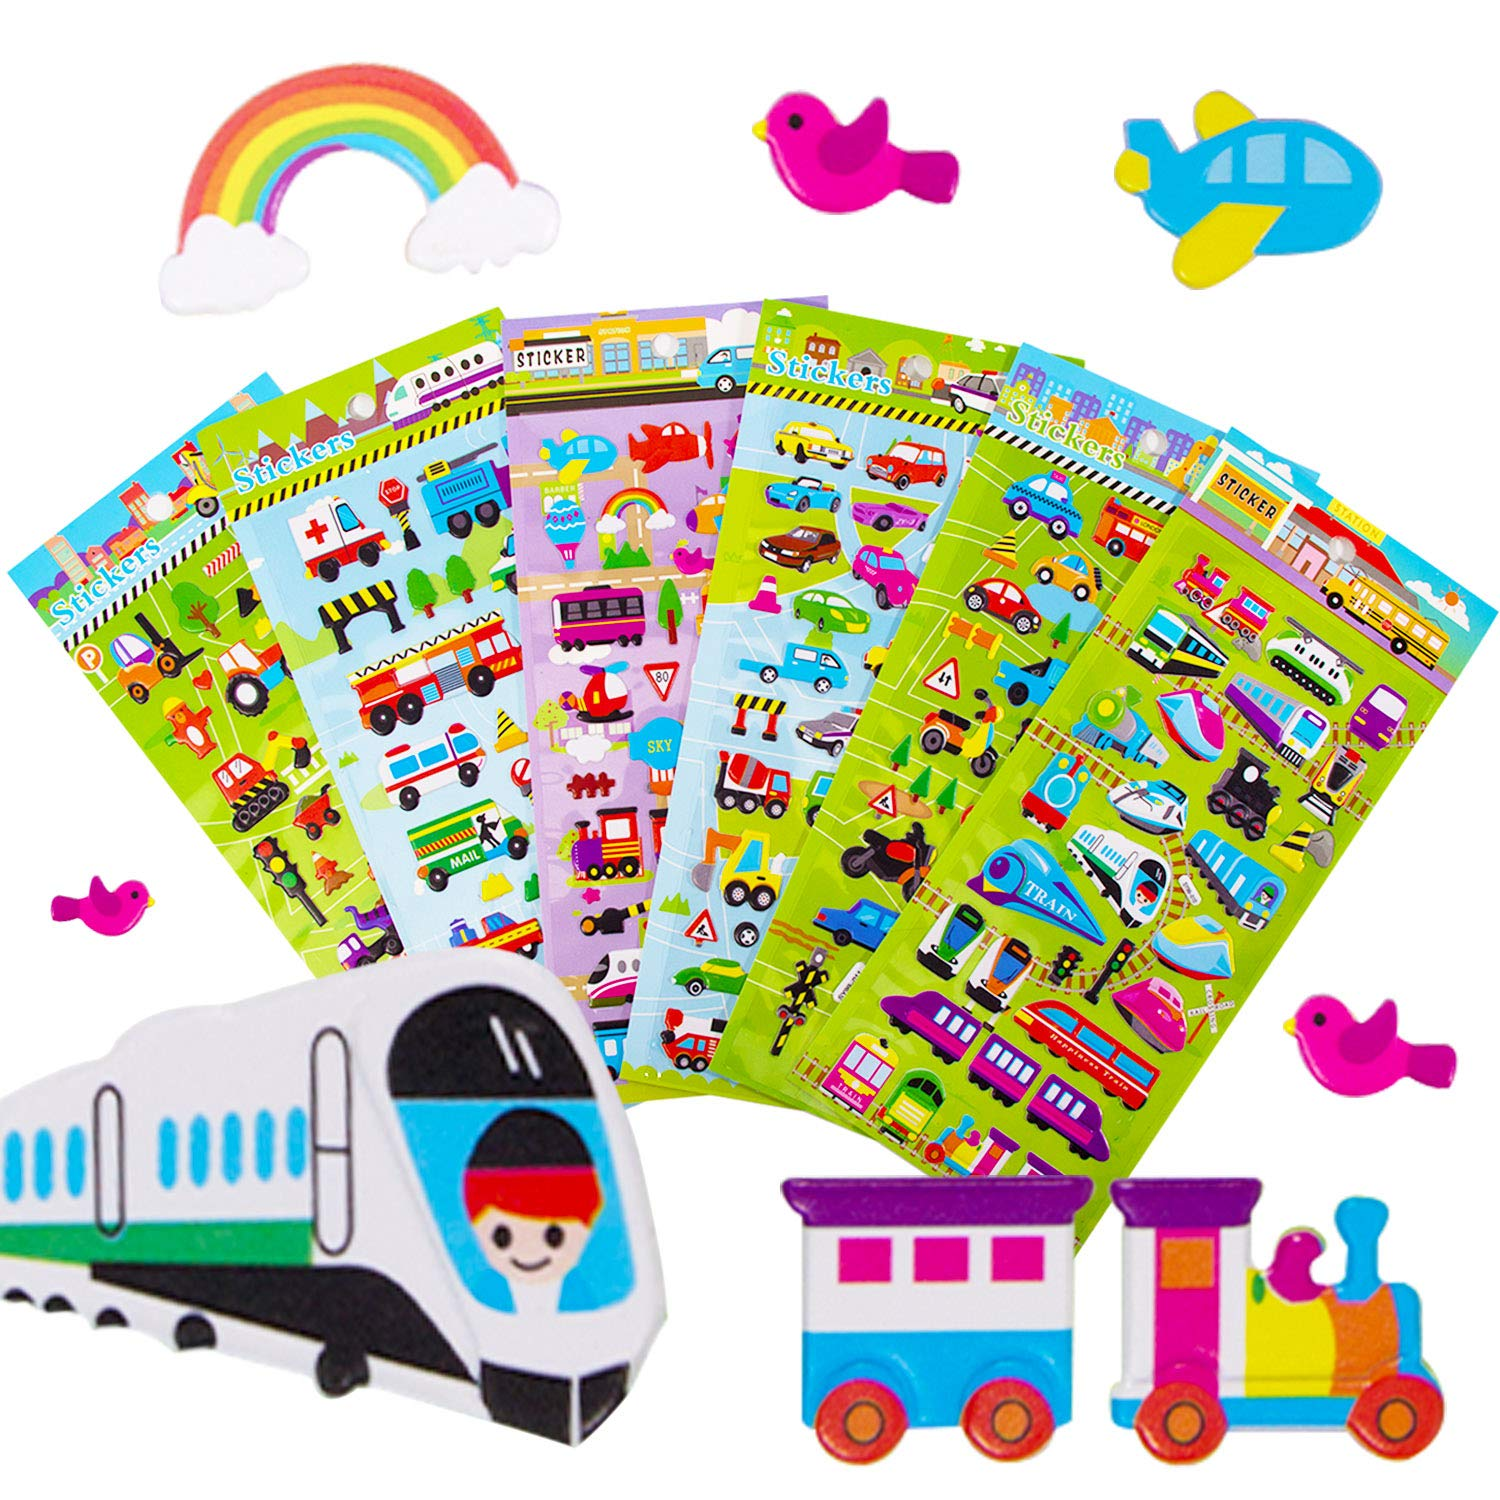 Stickers 1300 Year-Round Sticker Bulk Pack for Teachers School,Students Toddlers,Scrapbooking Girl Boy Birthday Present Gift 3D Puffy Stickers Including cars and more and 20 Different Scenes